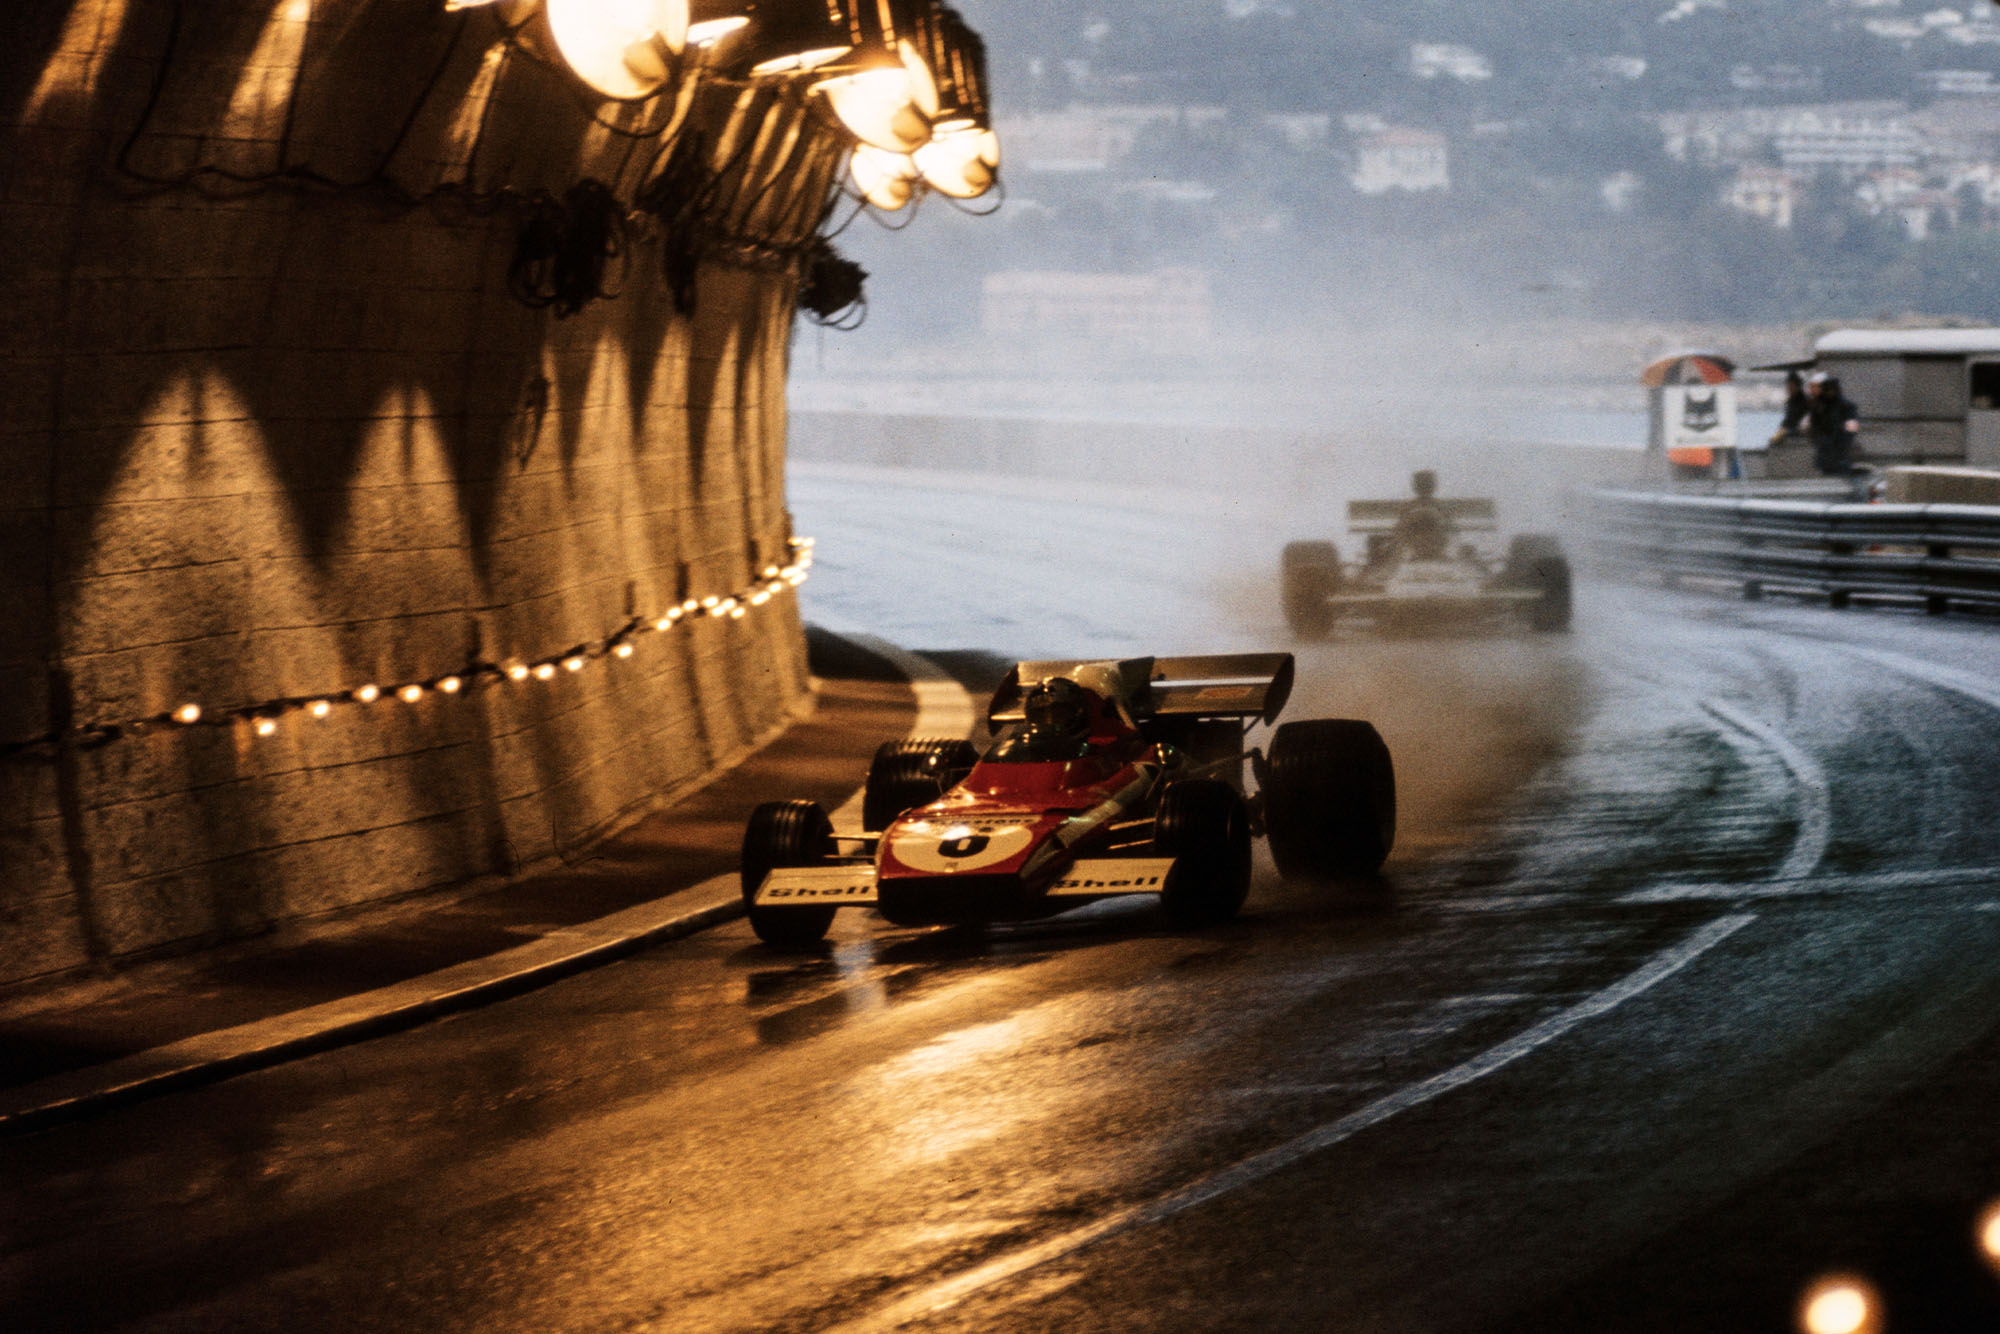 Ferrari's Jacky Ickx blasts through the tunnel in wet conditions at the 1972 Monaco Grand Prix.